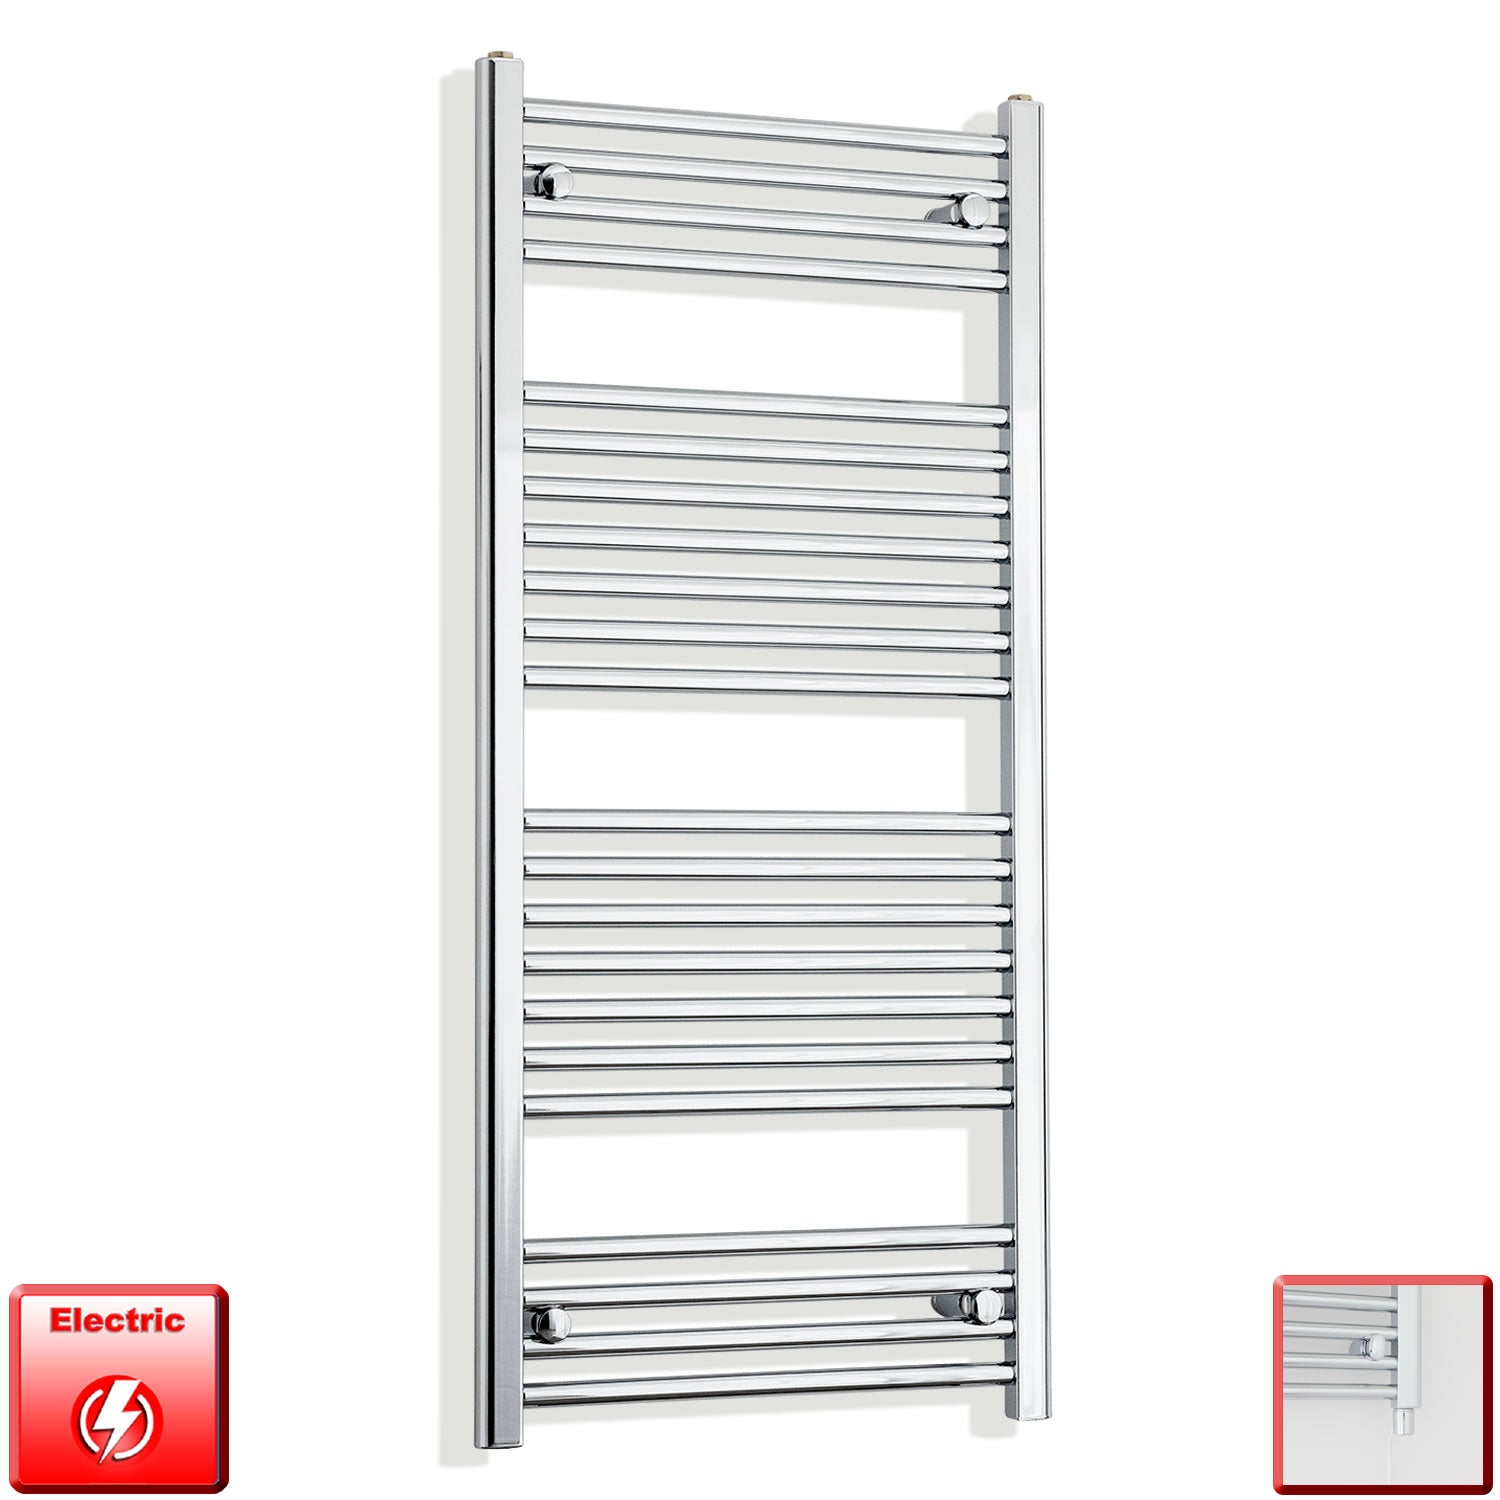 600mm Wide 1200mm High Flat Chrome Pre-Filled Electric Heated Towel Rail Radiator HTR,Single Heat Element